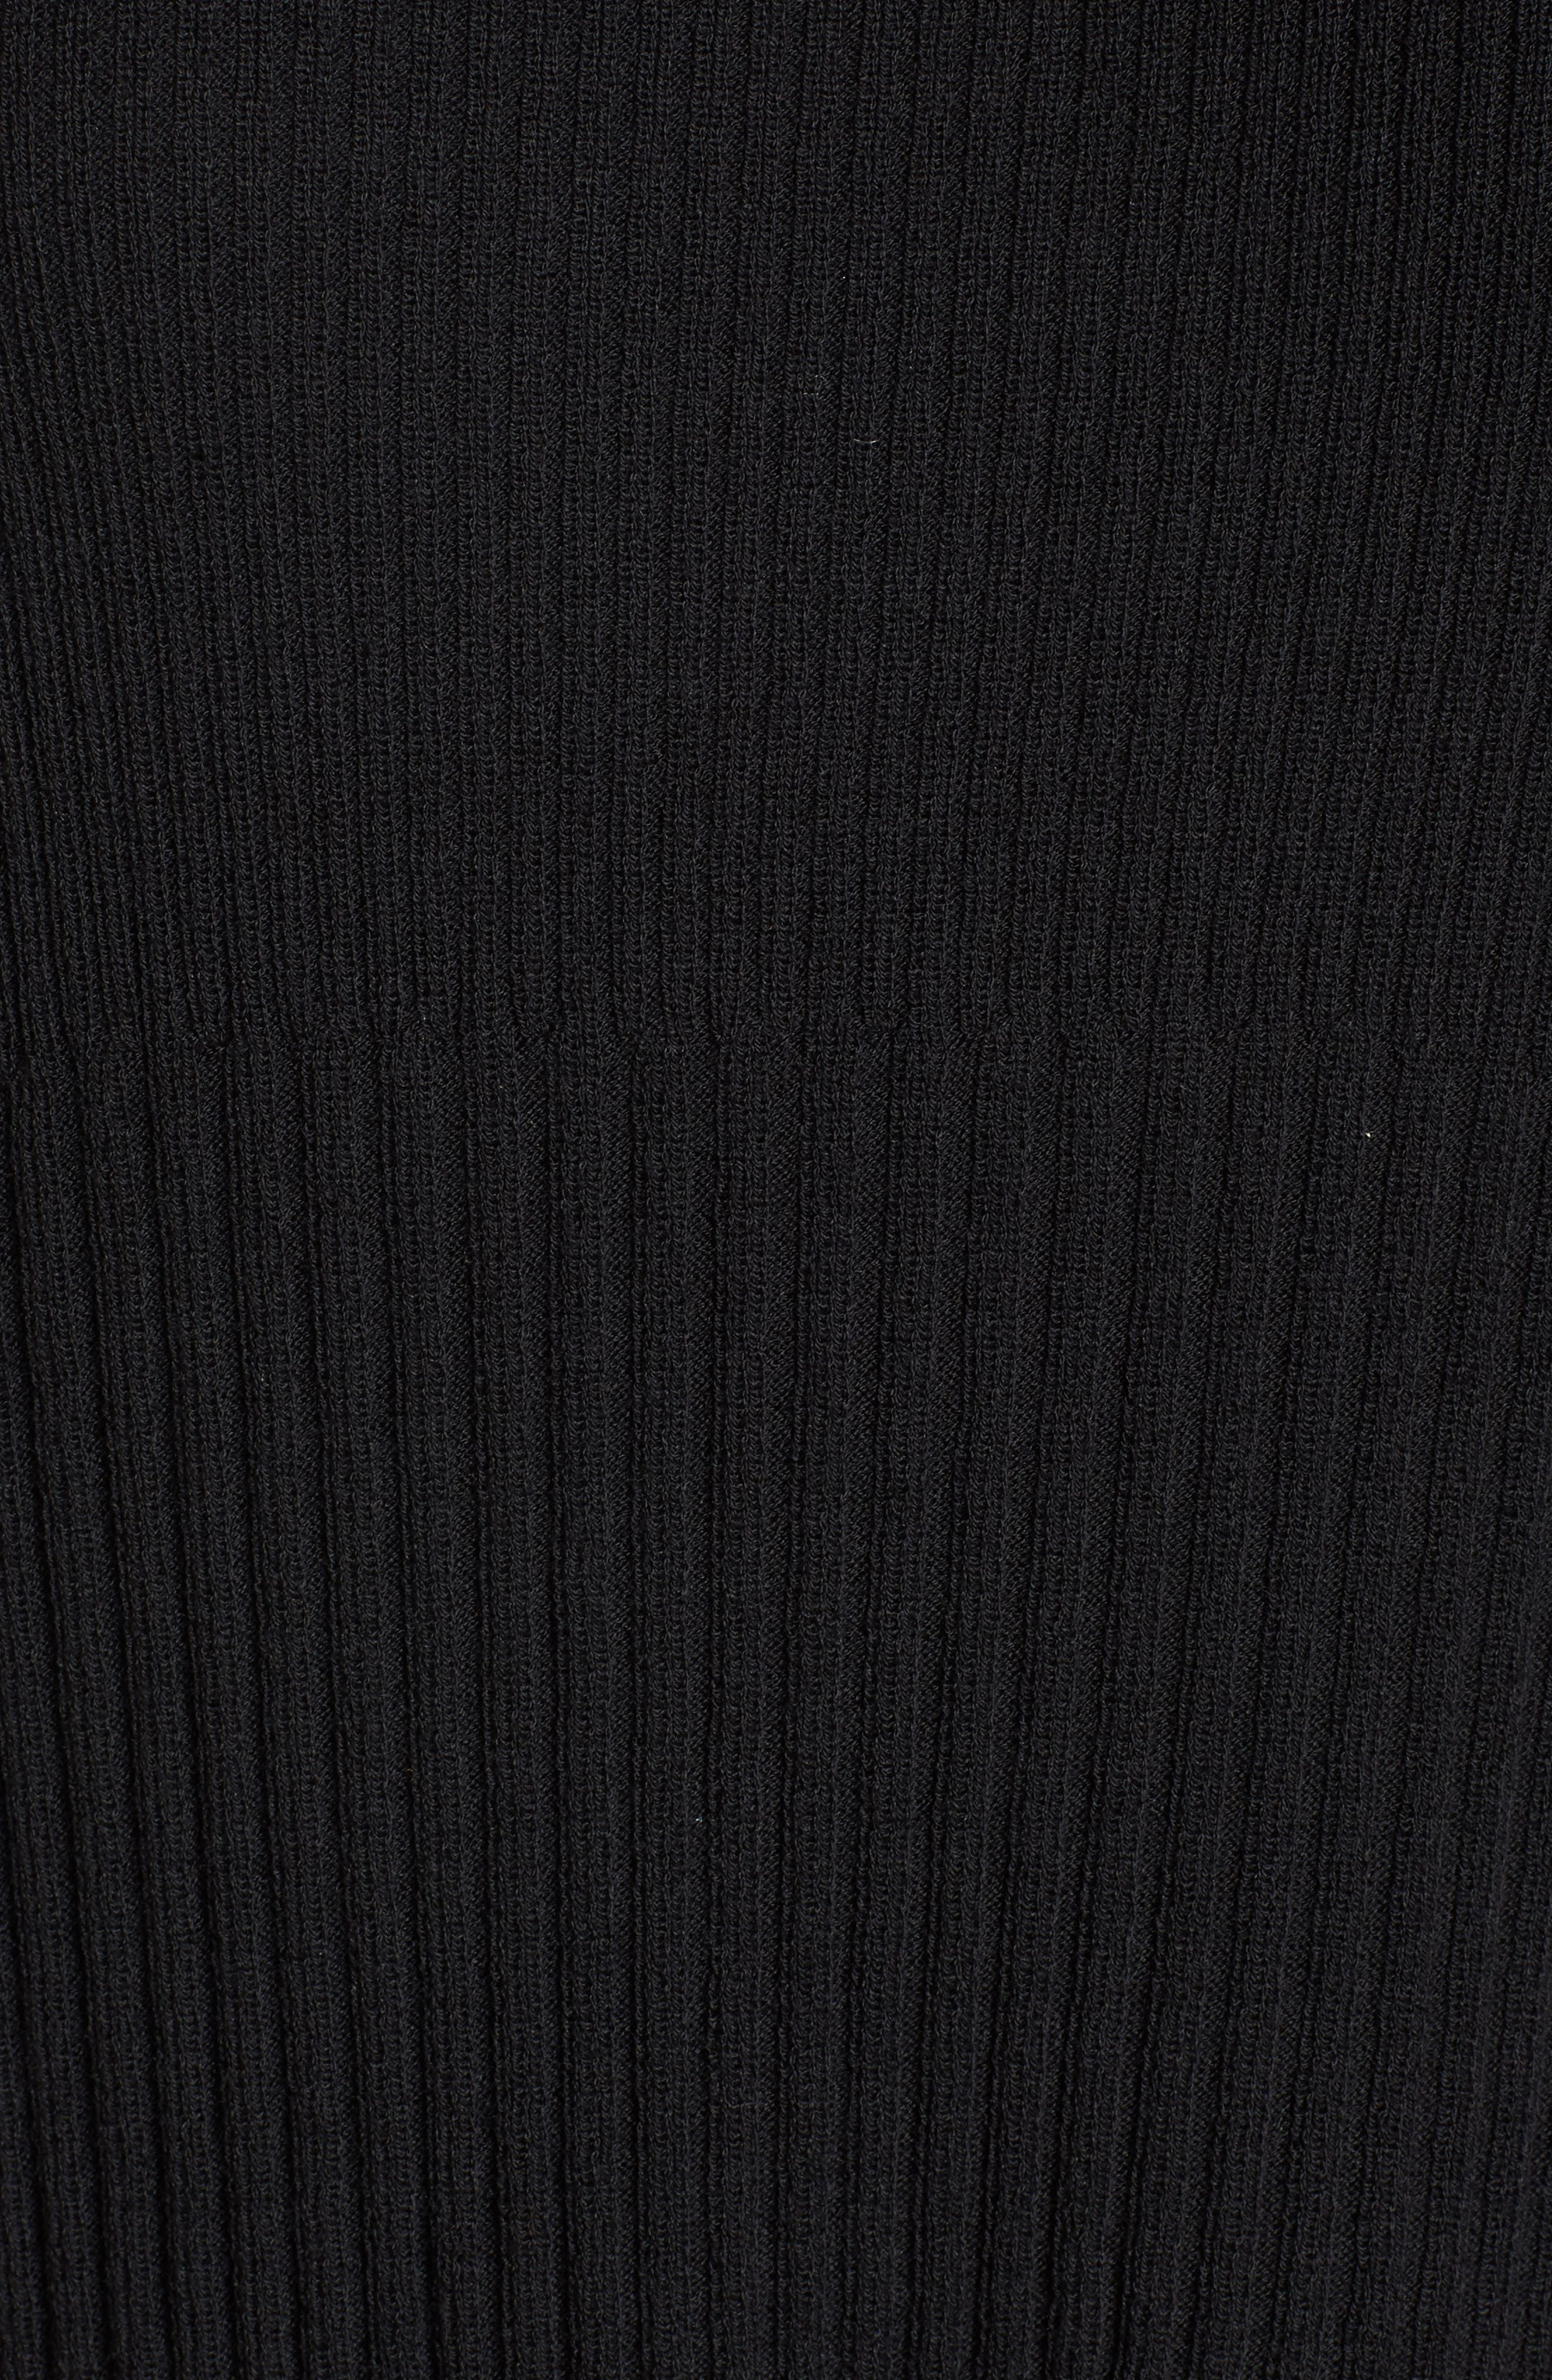 Ribbed Wool Sweater Dress,                             Alternate thumbnail 5, color,                             001